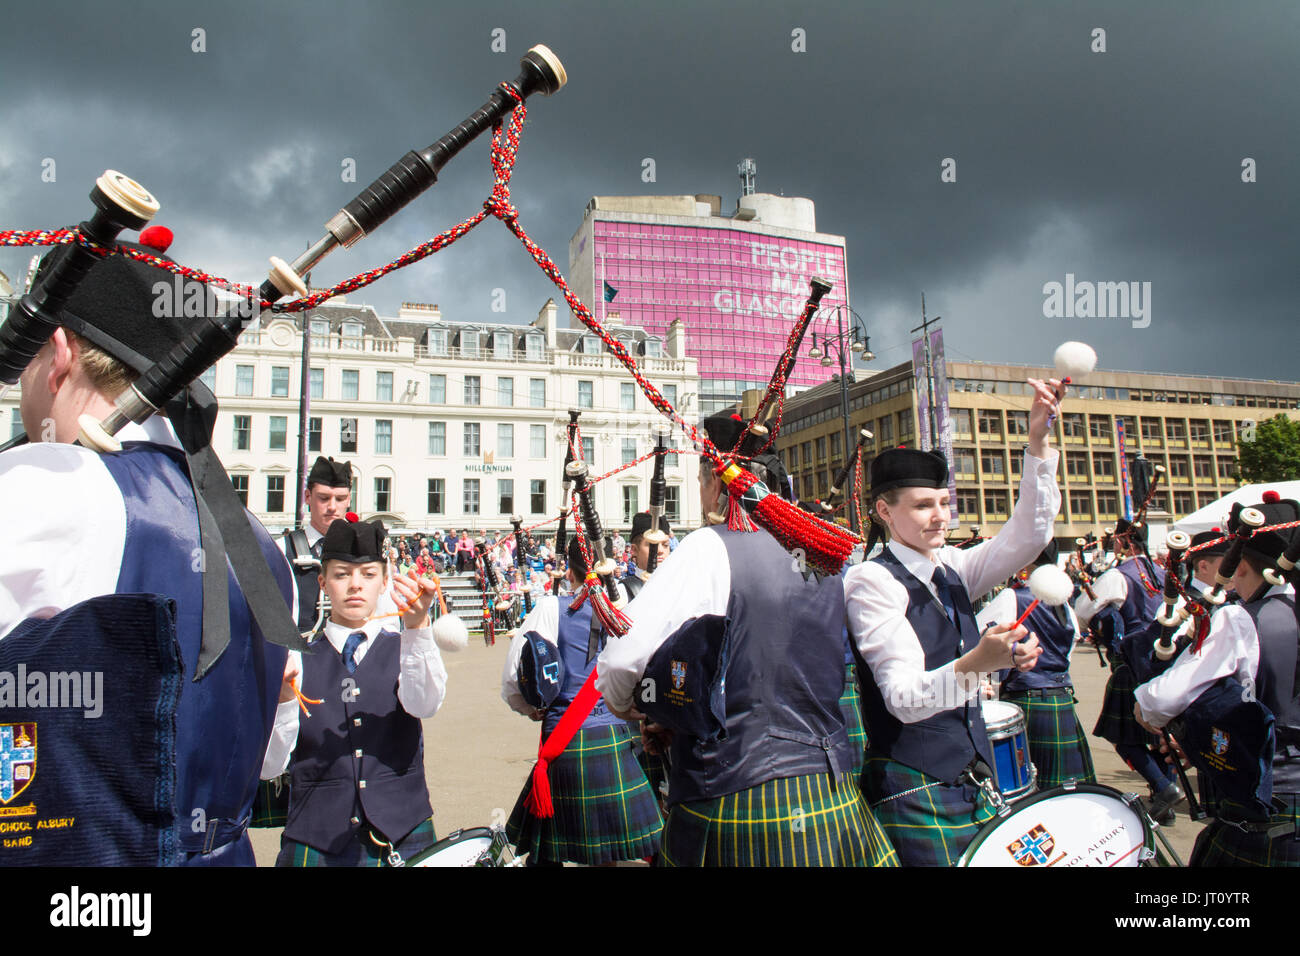 George Square, Glasgow, Scotland, UK. 7th Aug, 2017 Piping Live! - the Glasgow International Piping Festival began Stock Photo